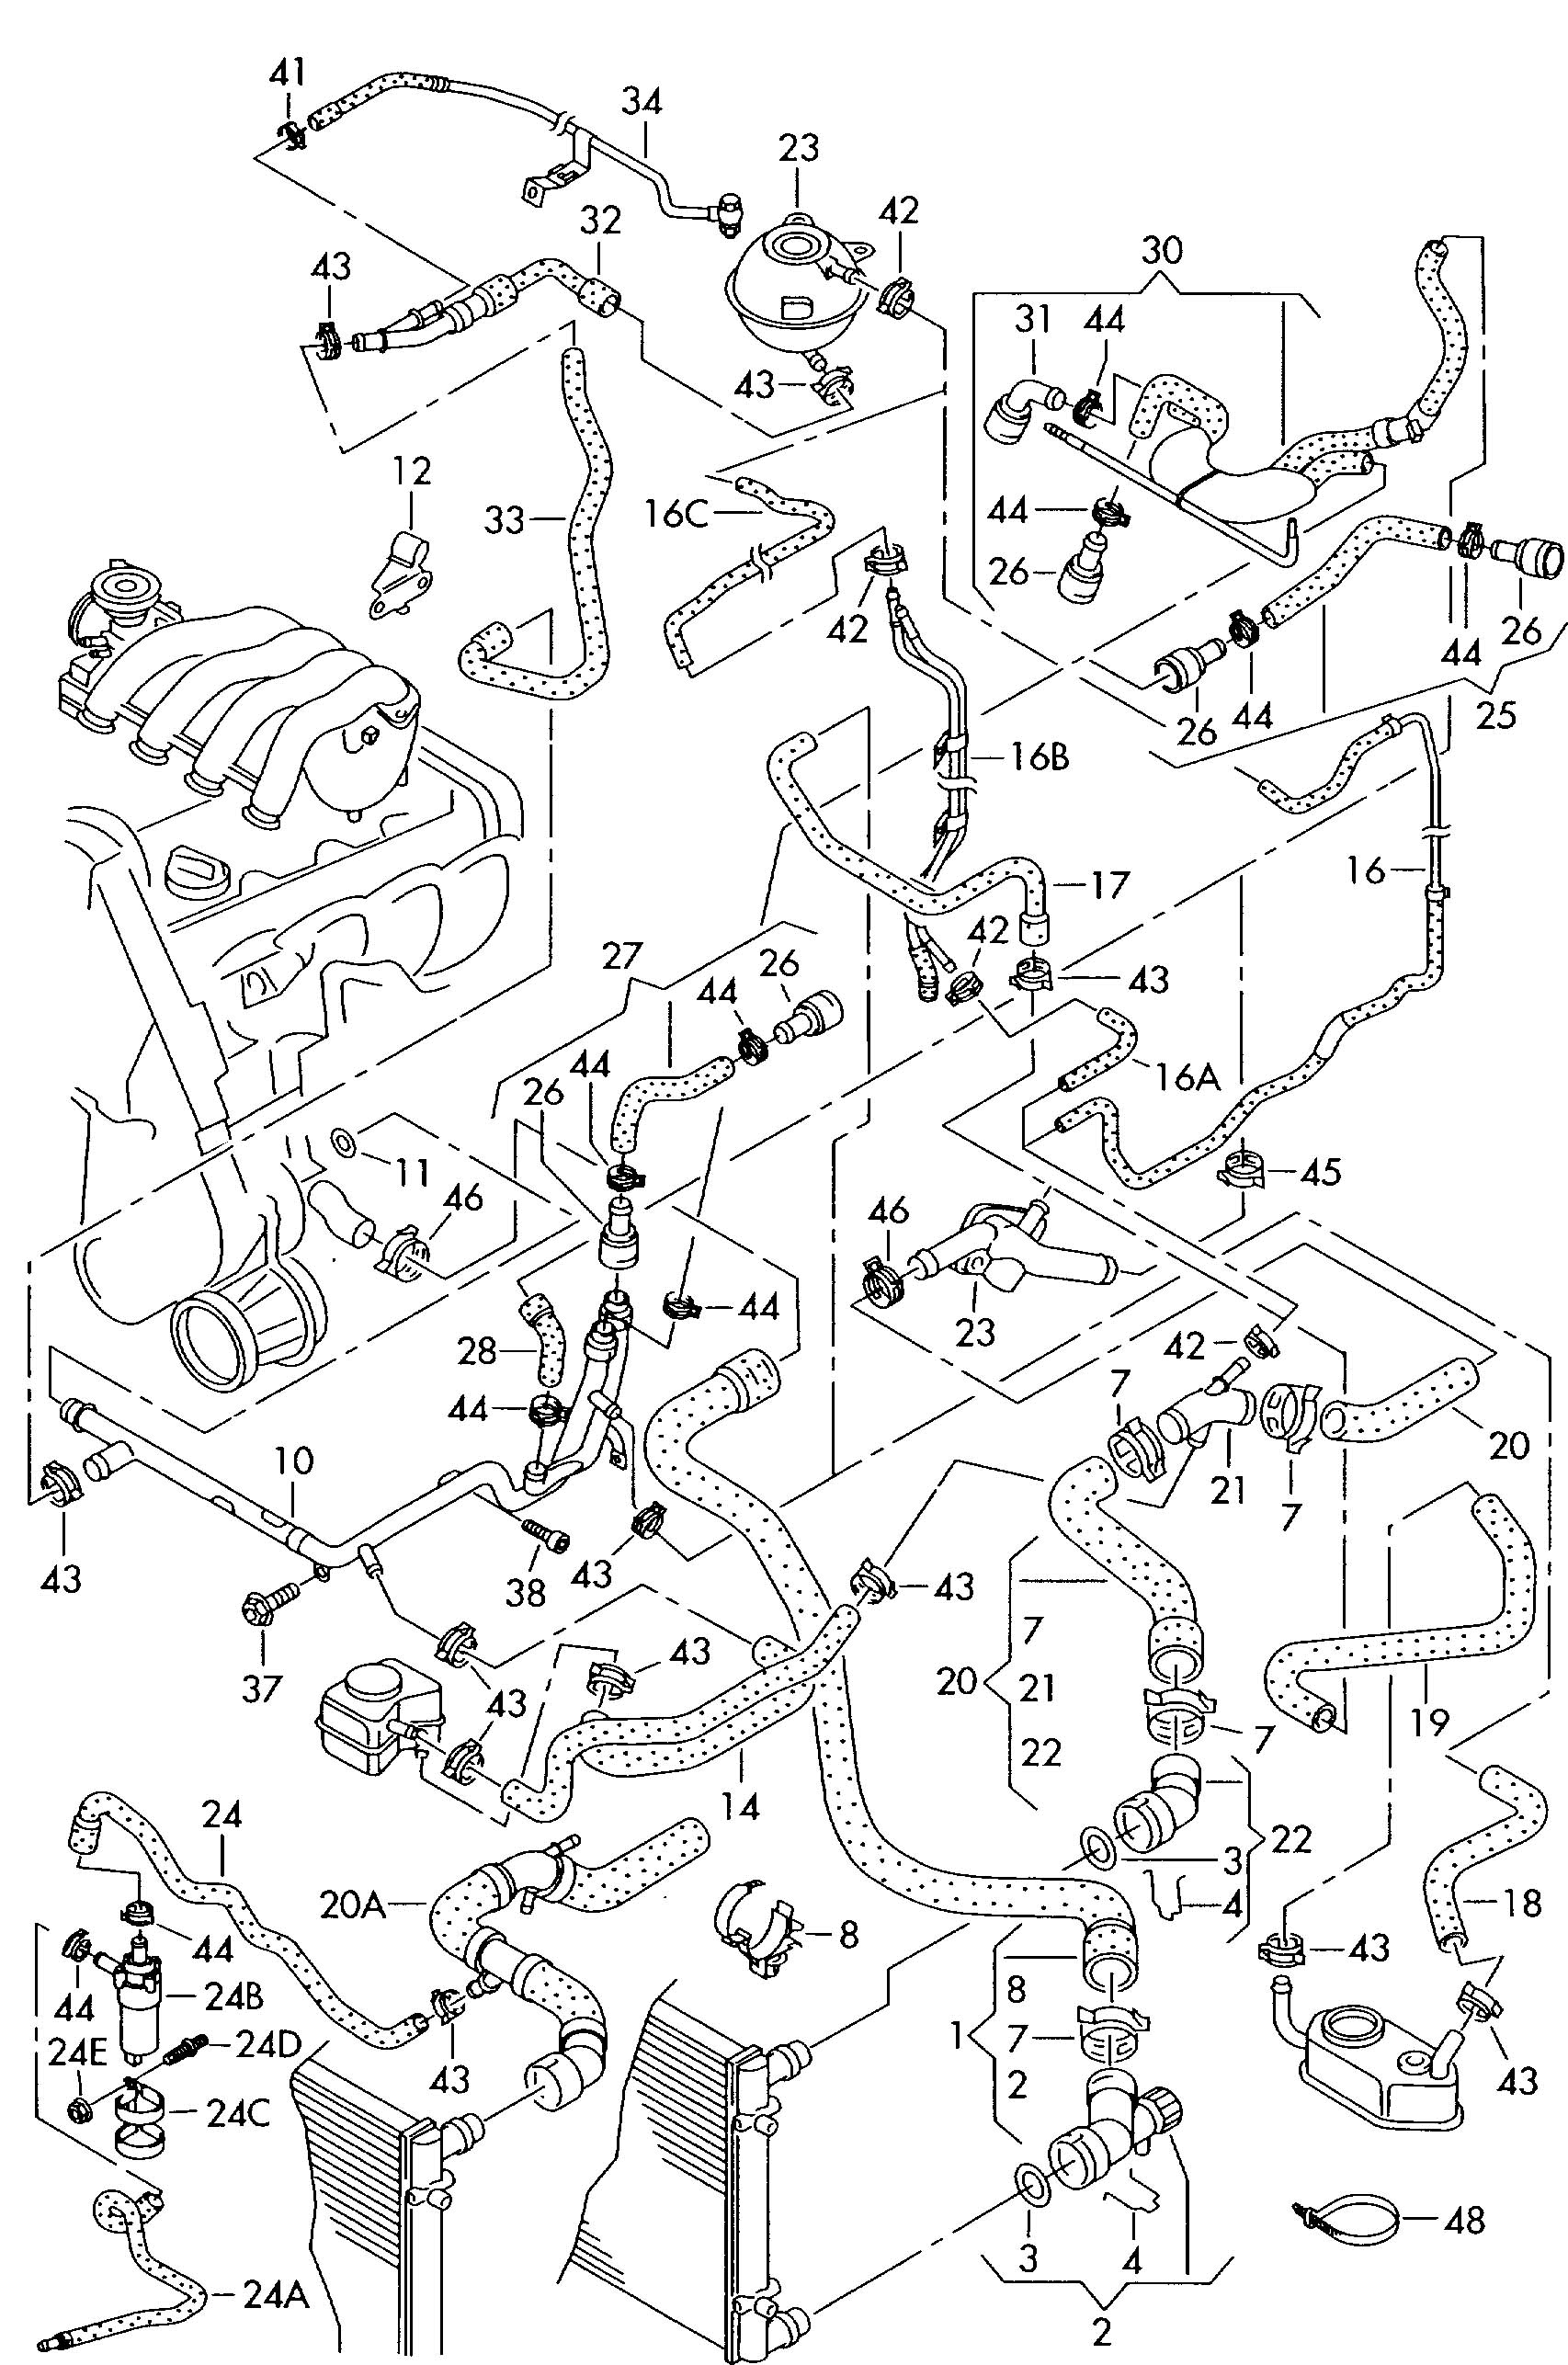 2006 Volkswagen Passat Fuse Box Diagram also 2003 Vw Jetta Tdi Fuse Diagram Html likewise Showthread as well Vw Passat Wiring Diagram 2008 Efcaviation 2009 Jetta Tdi Fuse additionally Volkswagen Beetle Tdi 1 9l Serpentine Belt Diagrams. on 2003 vw beetle engine diagram